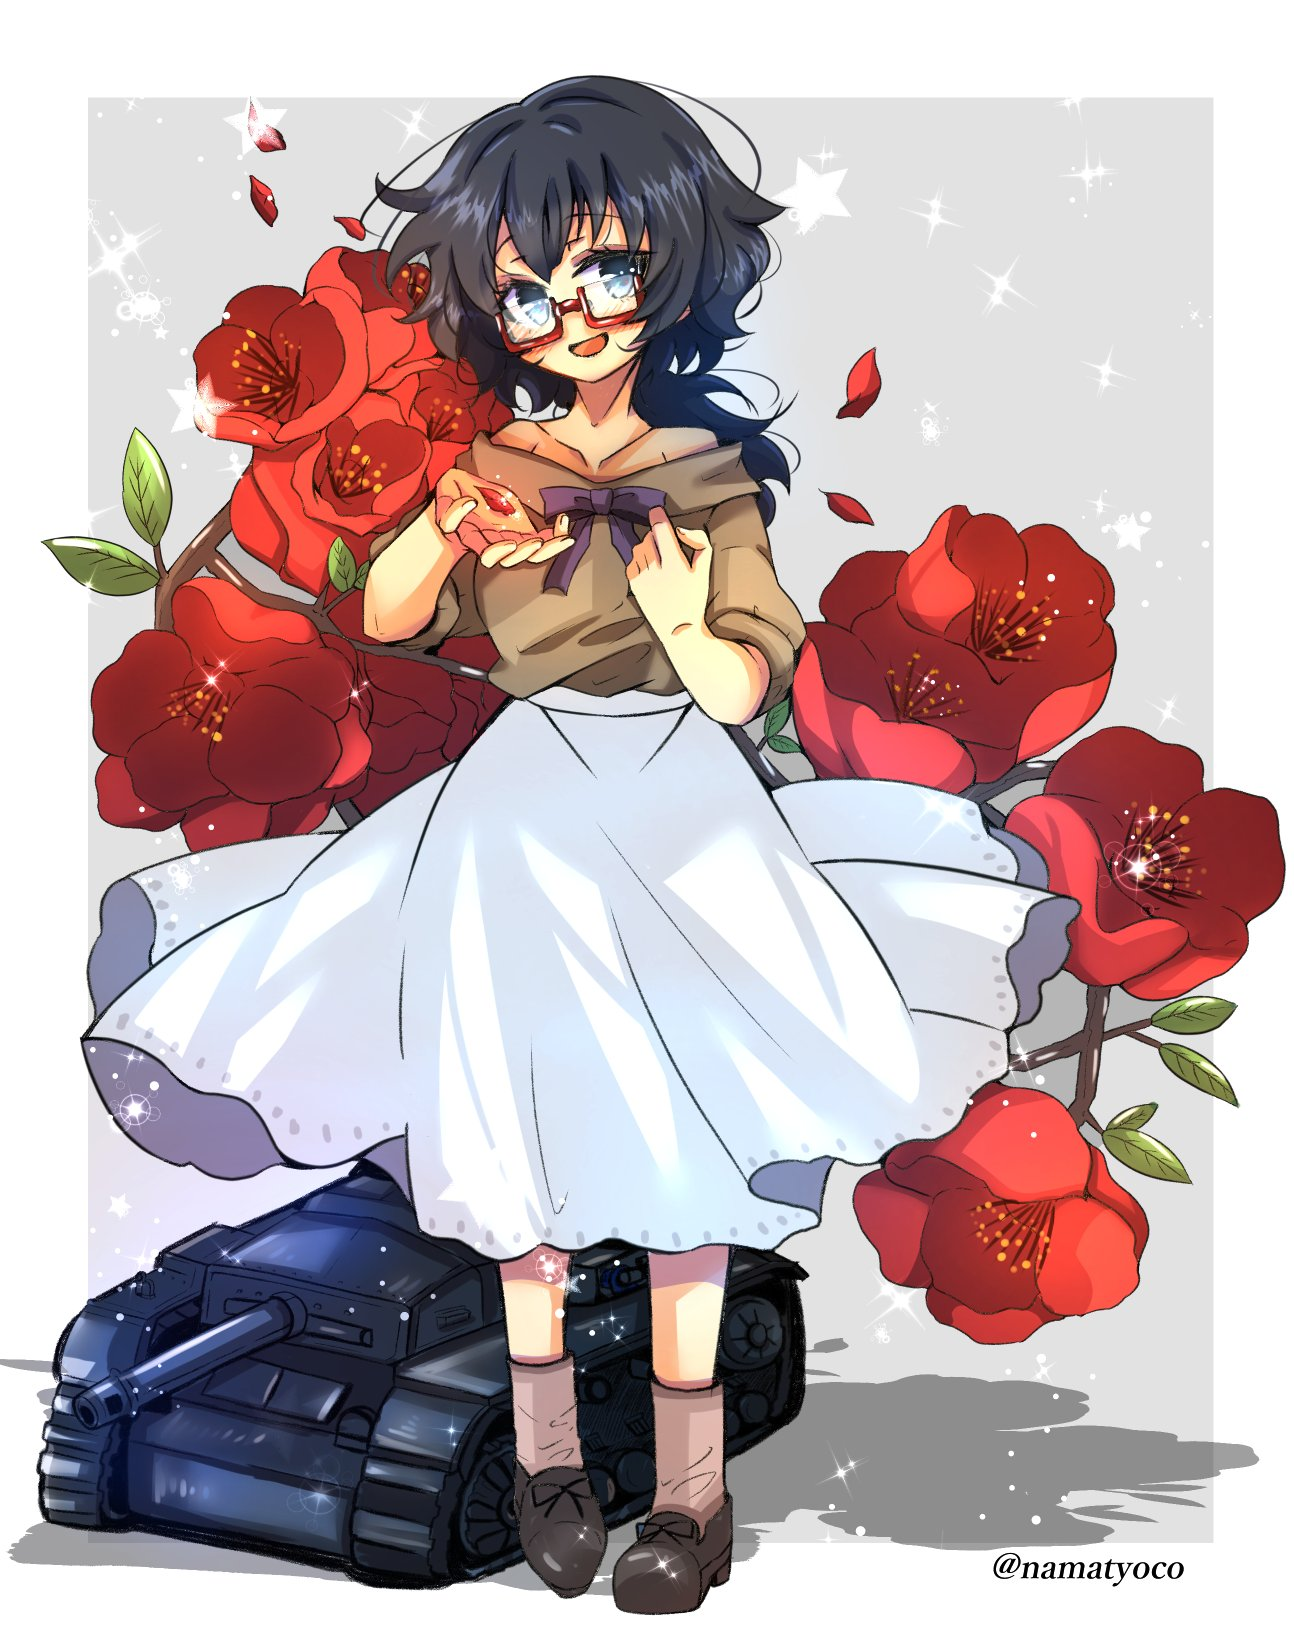 1girl bare_shoulders black_bow black_eyes black_footwear black_hair bow brown_legwear brown_shorts casual commentary floral_background flower_request full_body girls_und_panzer glasses grey_background ground_vehicle head_tilt high-waist_skirt highres holding light_blush light_particles looking_at_viewer medium_skirt messy_hair military military_vehicle miniature motor_vehicle namatyoco off-shoulder_shirt off_shoulder open_mouth oryou_(girls_und_panzer) outside_border petals red-framed_eyewear semi-rimless_eyewear shadow shirt shoes short_hair short_ponytail short_sleeves shorts skirt smile socks solo sparkle standing star sturmgeschutz_iii tank twitter_username under-rim_eyewear white_skirt